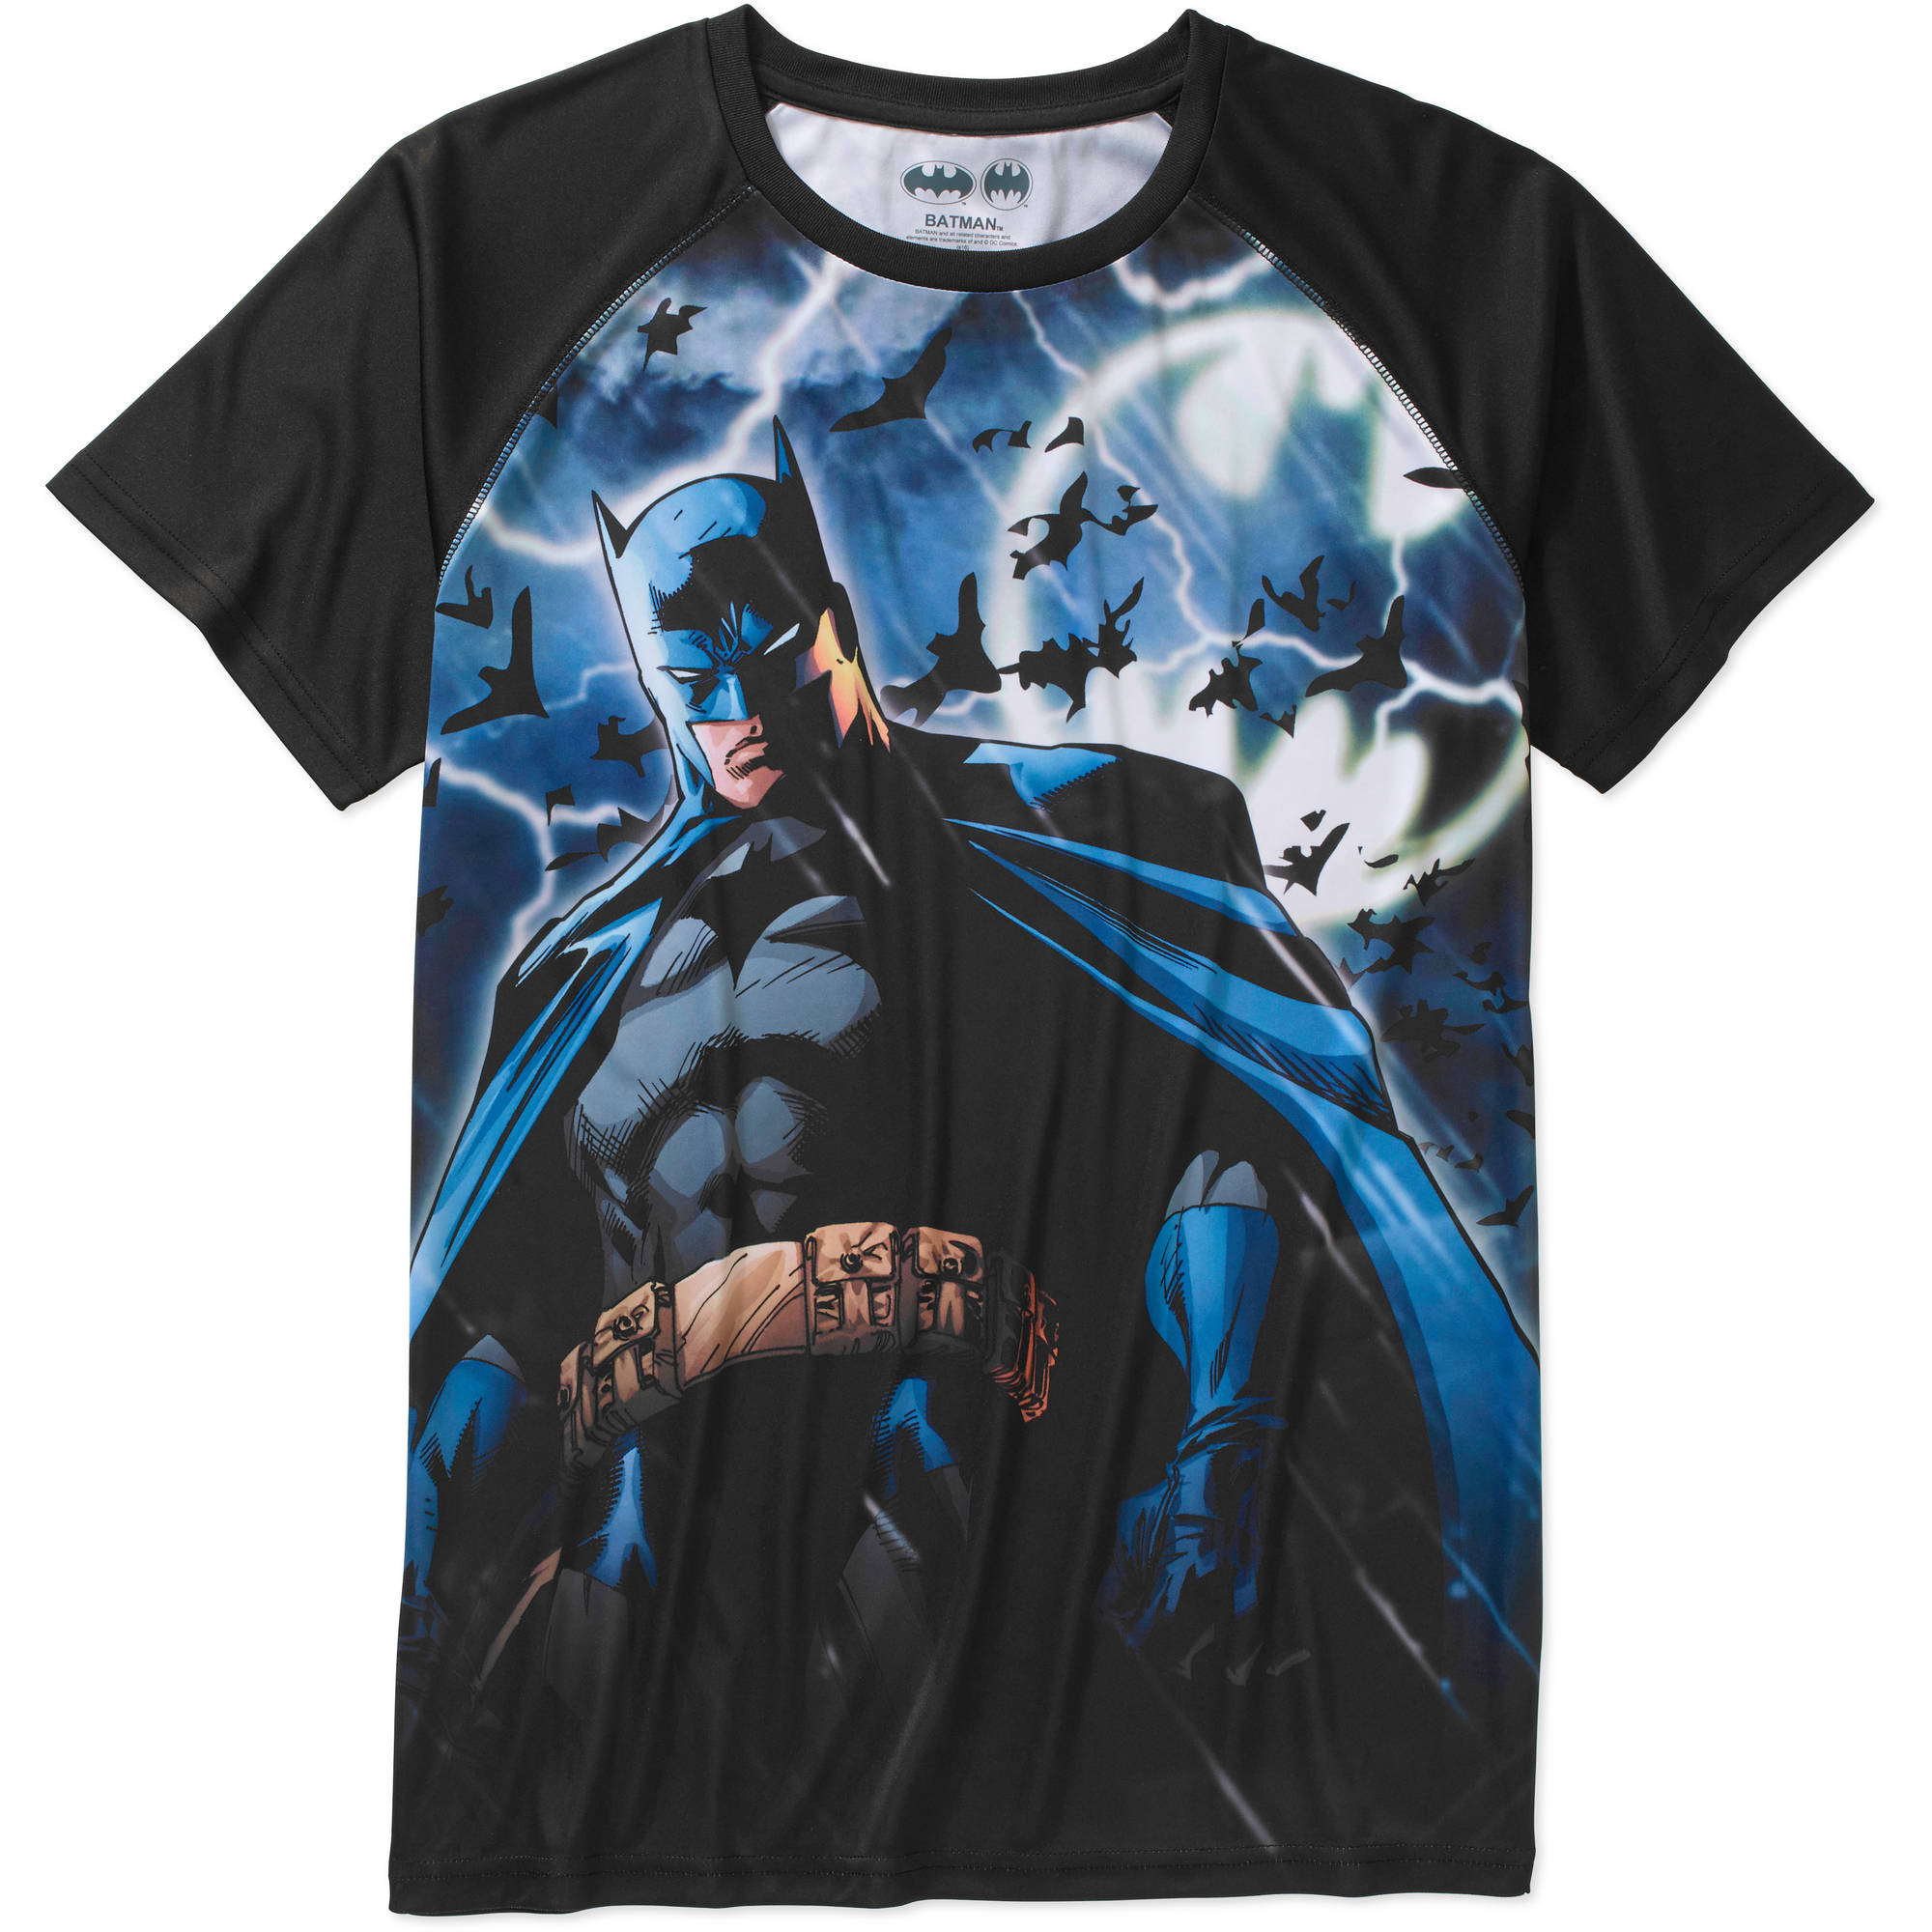 Batman Sublimated Big Men's Raglan Graphic Tee, 2XL